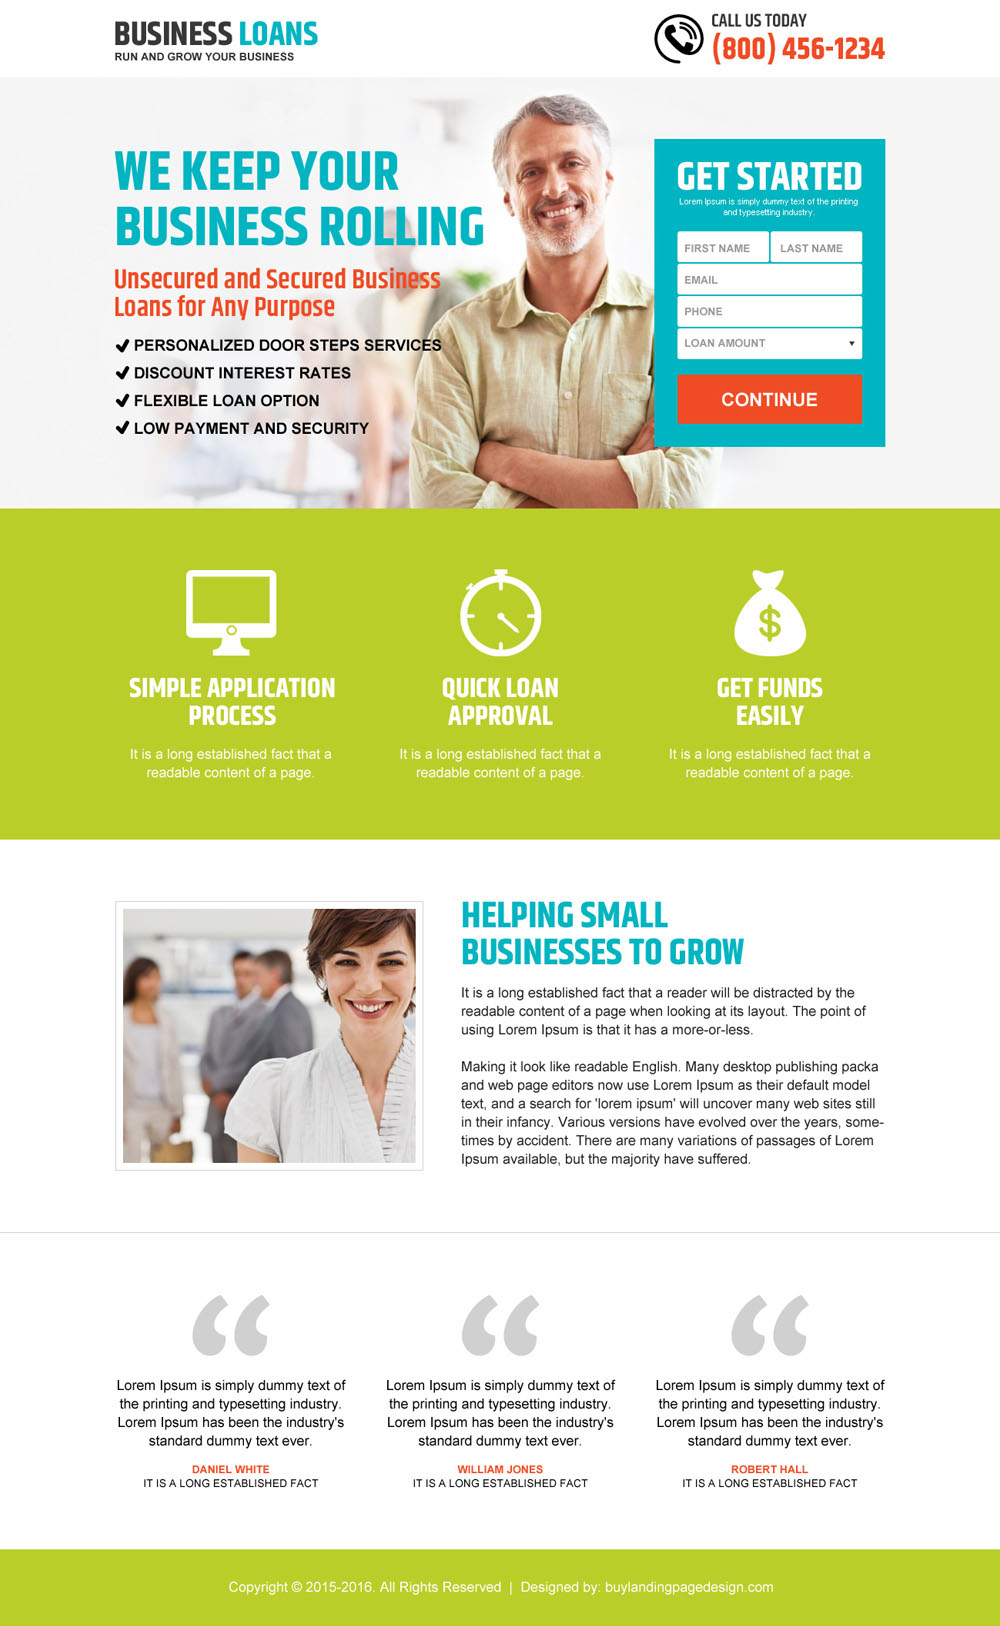 grow-your-business-with-loan-leads-lead-capture-clean-and-creative-landing-page-design-003